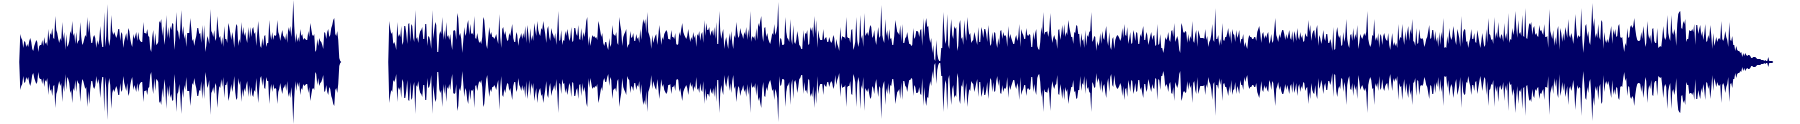 waveform of track #69779